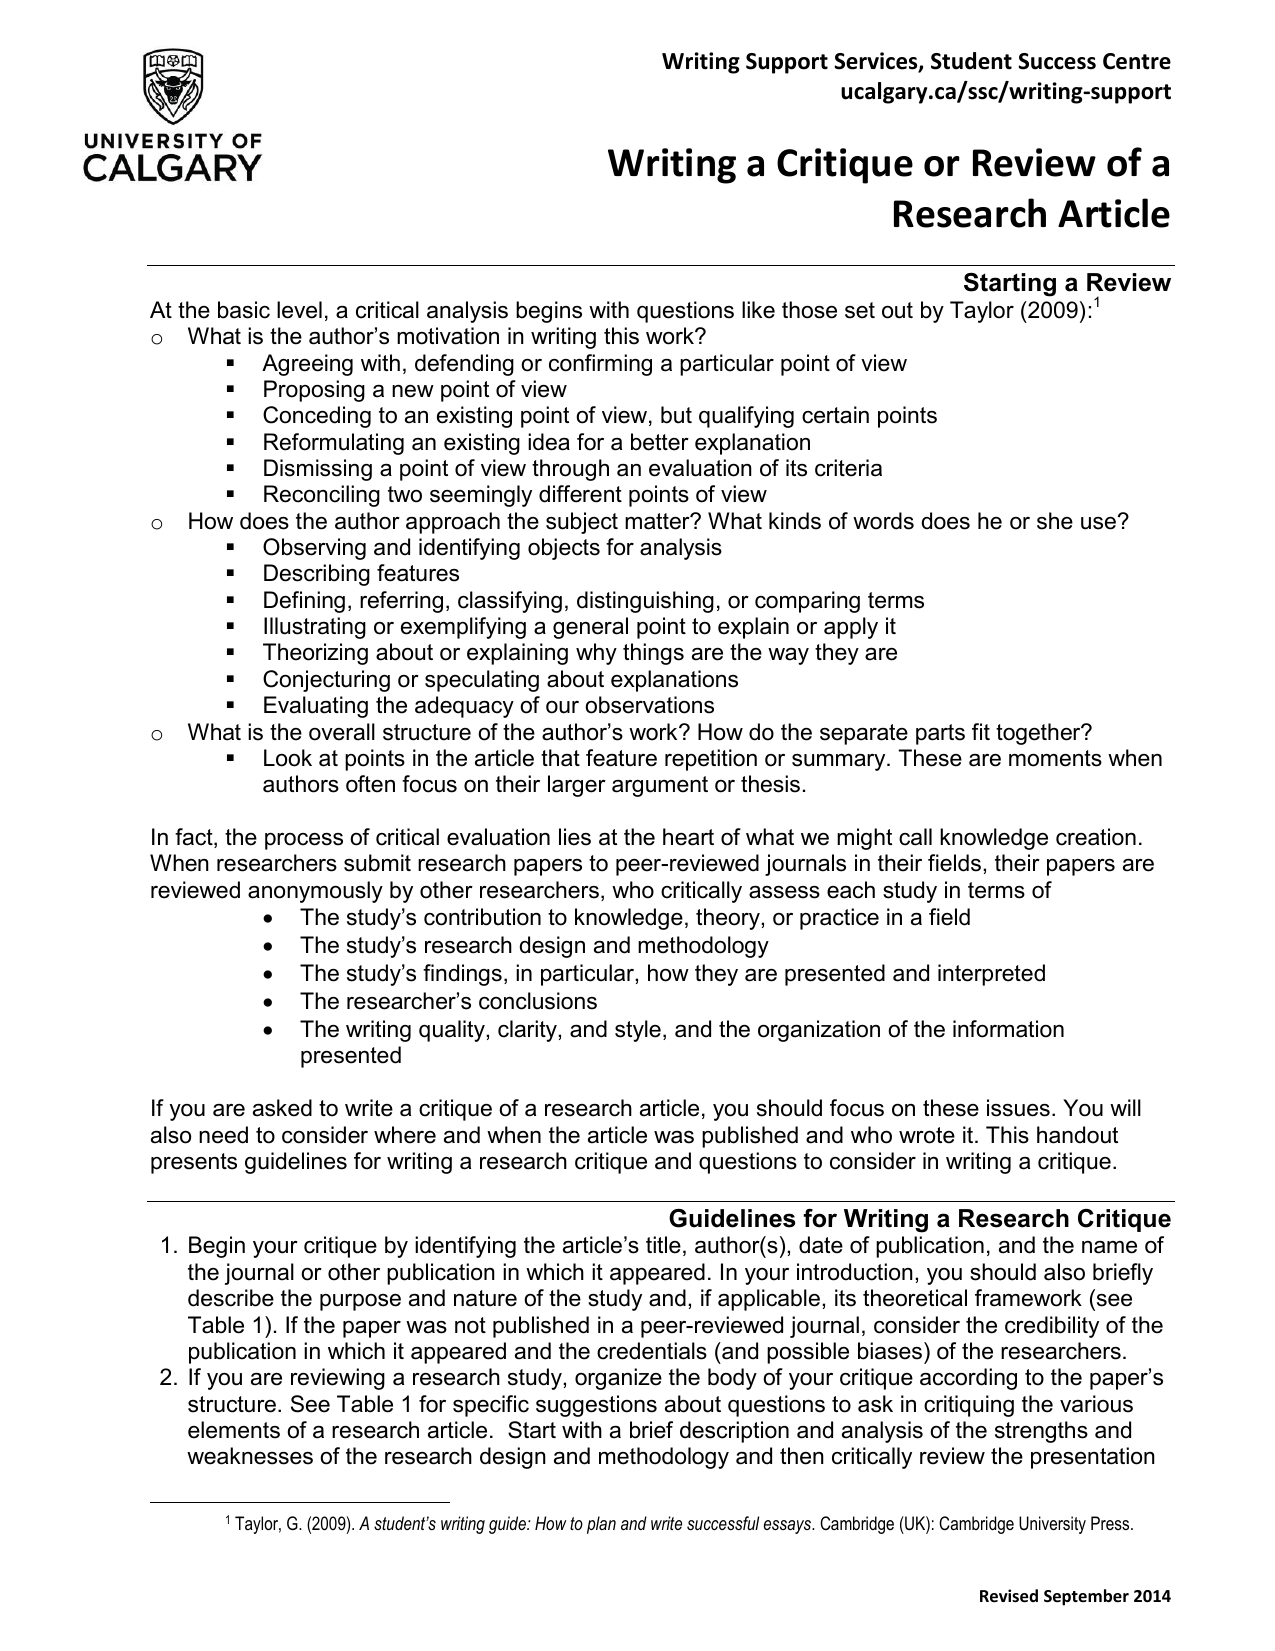 Writing a Critique or Review of a Research Article